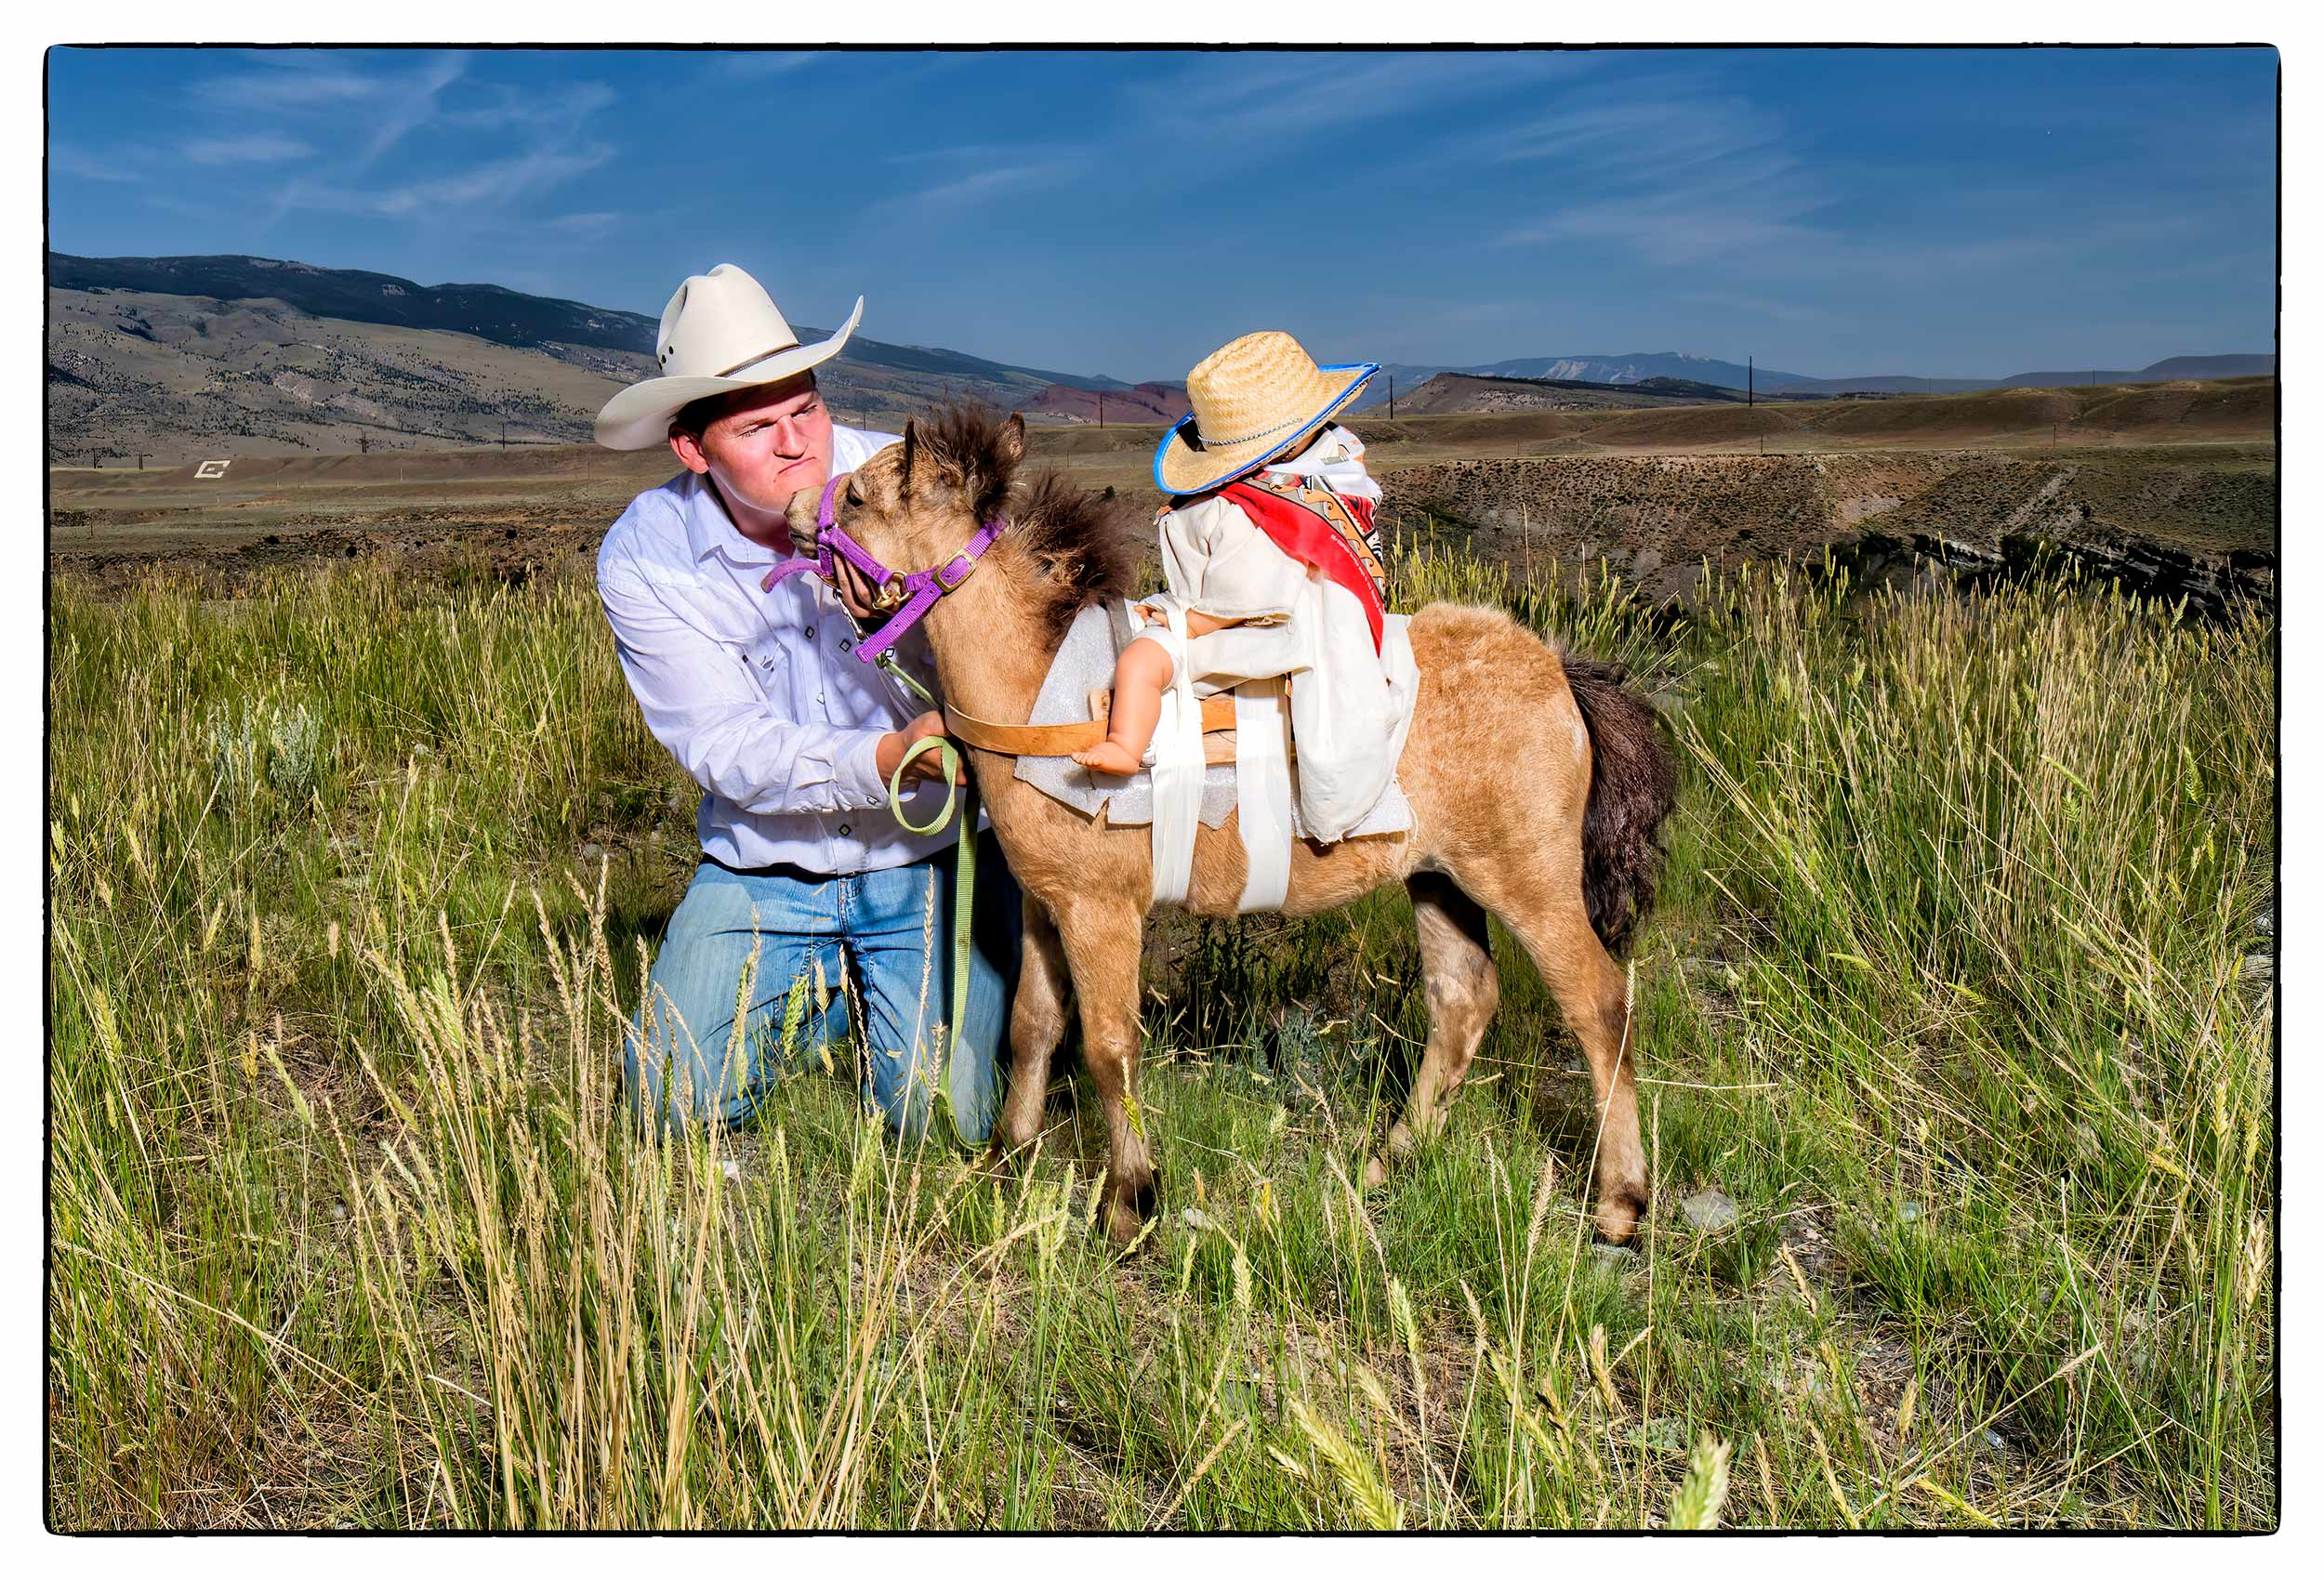 a-man-gets-kissed-by-a-miniature-donkey-in-a-field-in-cody-wyoming-usa